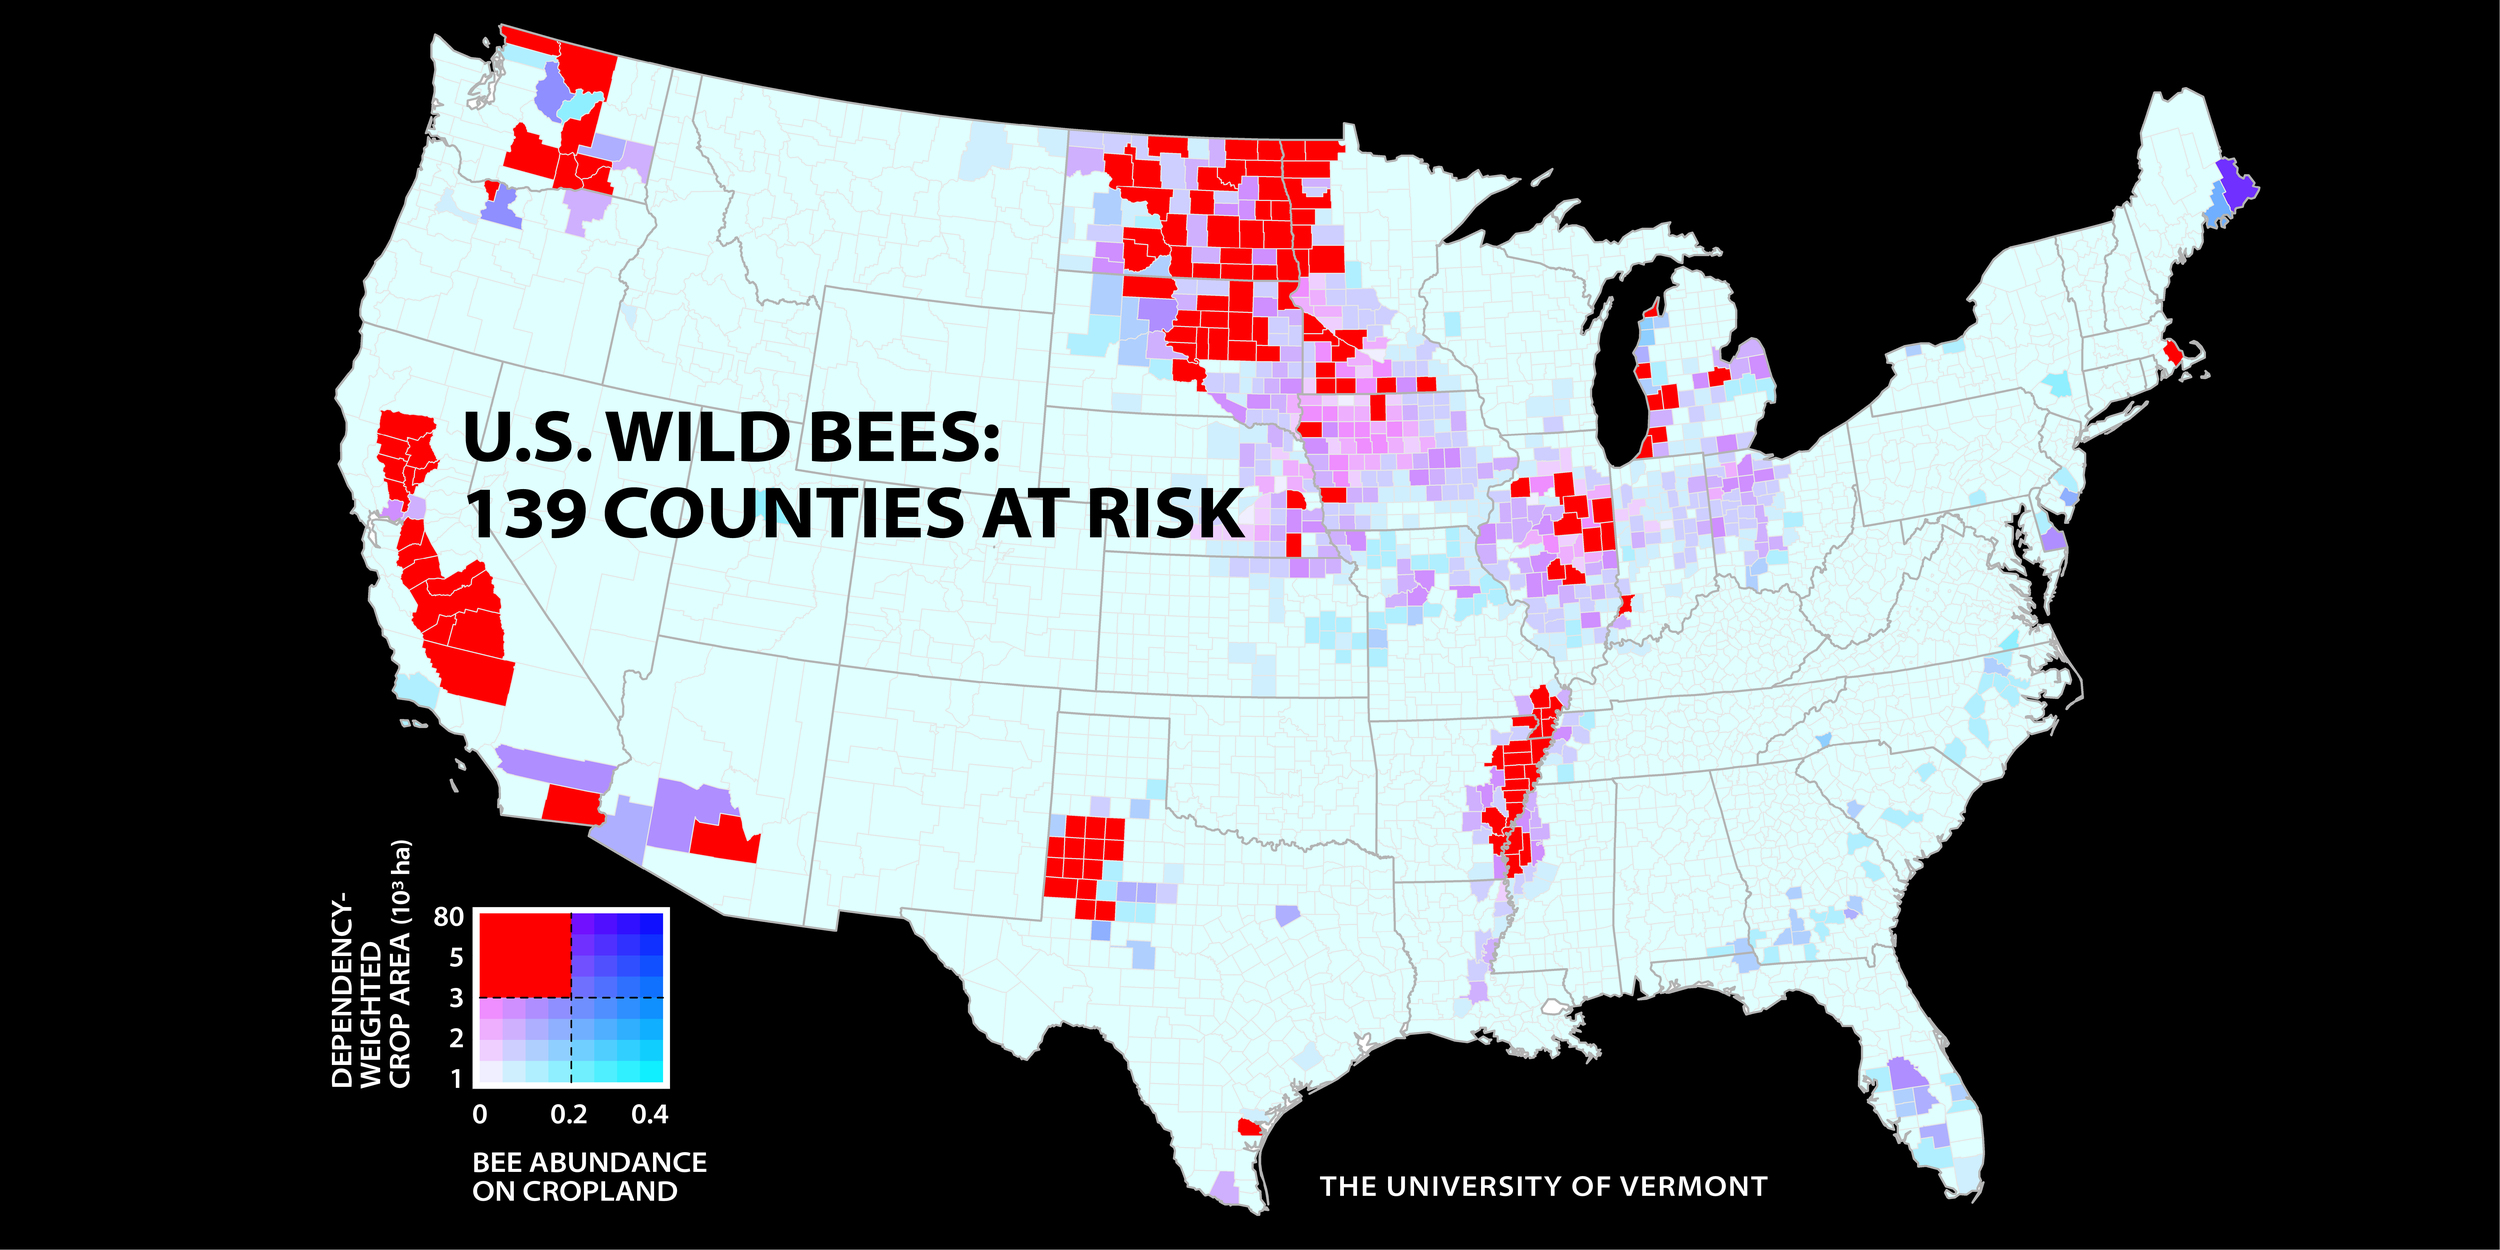 A new study of wild bees identifies 139 counties in key agricultural regions of California, the Pacific Northwest, the upper Midwest and Great Plains, west Texas, and the southern Mississippi River valley that have the most worrisome mismatch between falling wild bee supply and rising crop pollination demand. The study and map were published in the Proceedings of the National Academy of Sciences, and led by scientists at the University of Vermont.